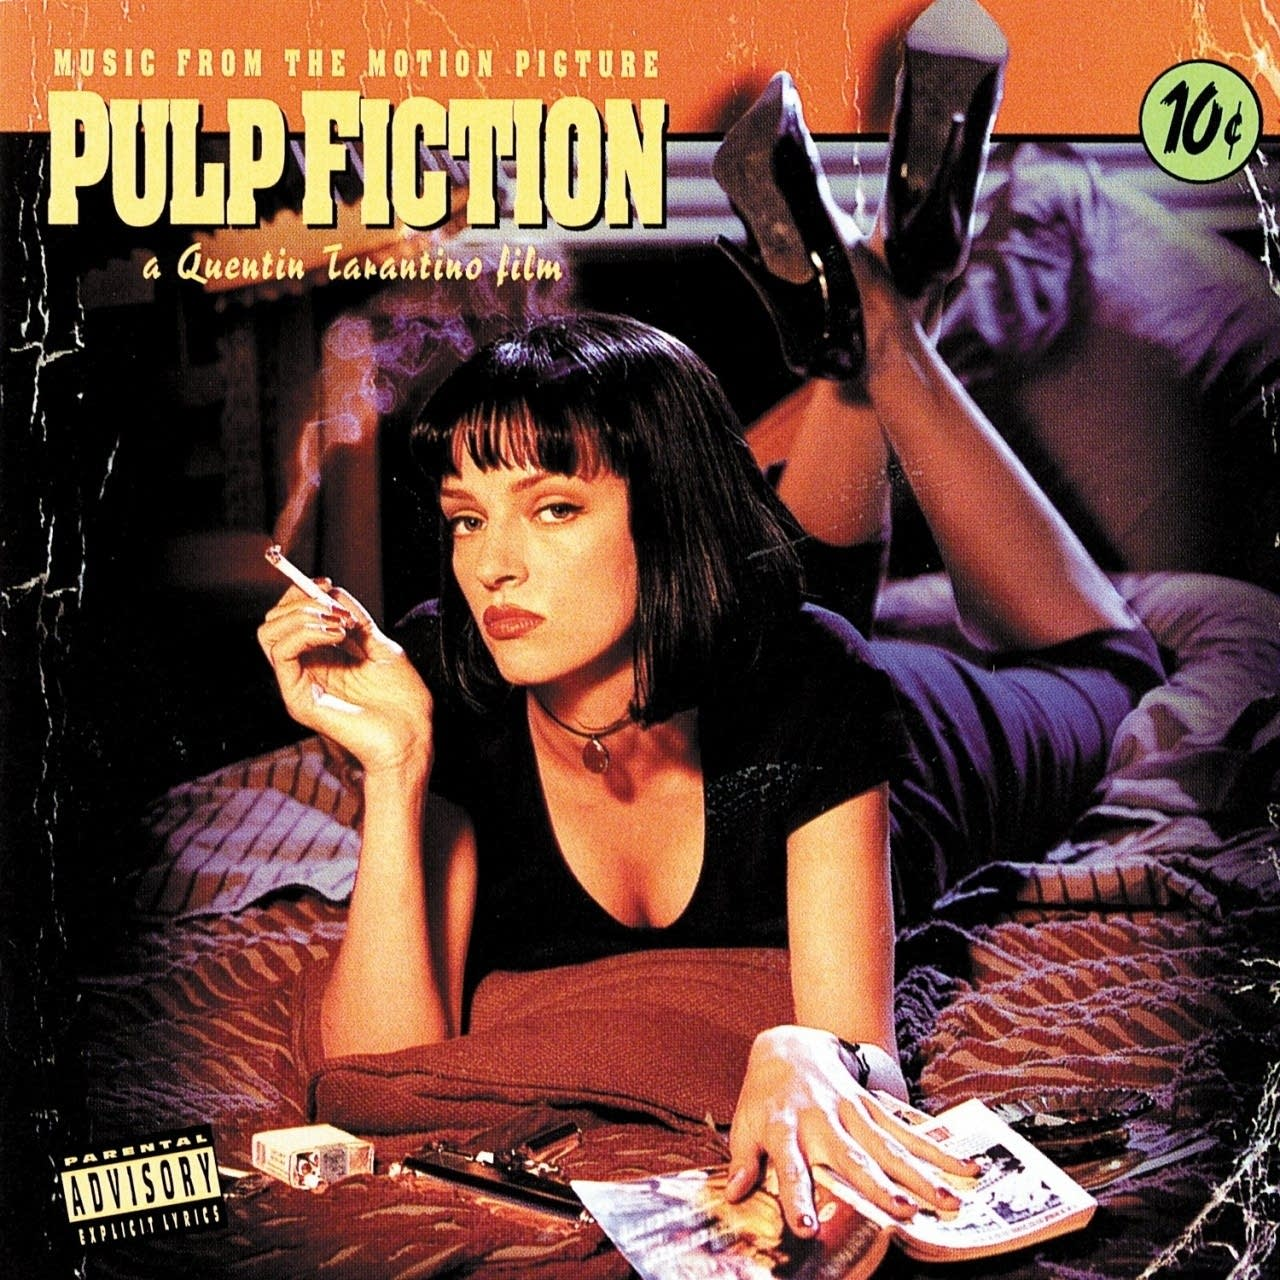 Pulp Fiction Soundtrack Album Artwork